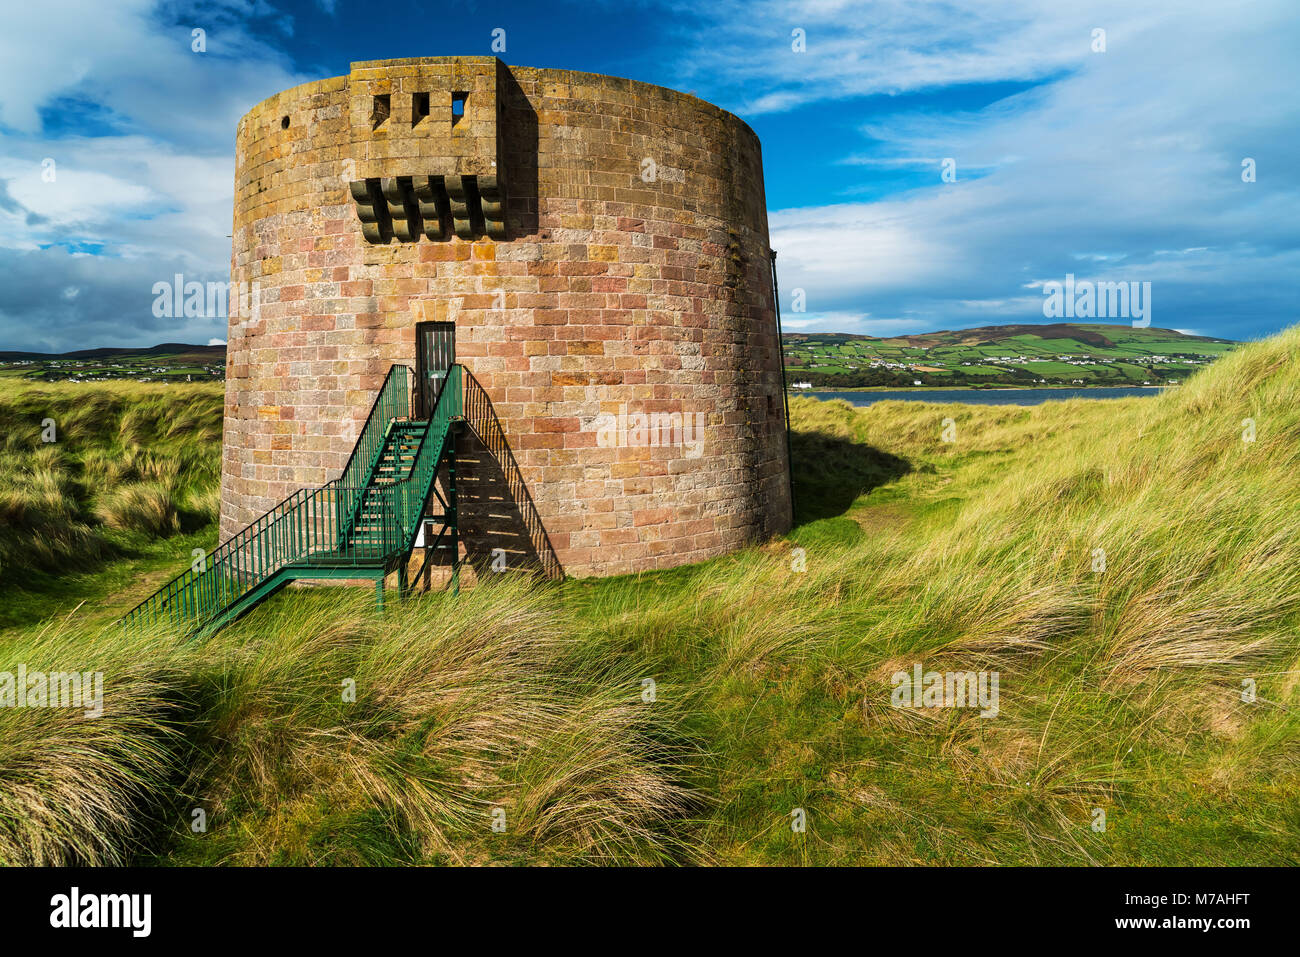 Fortress in the Magilligan Point, Northern Ireland - Stock Image